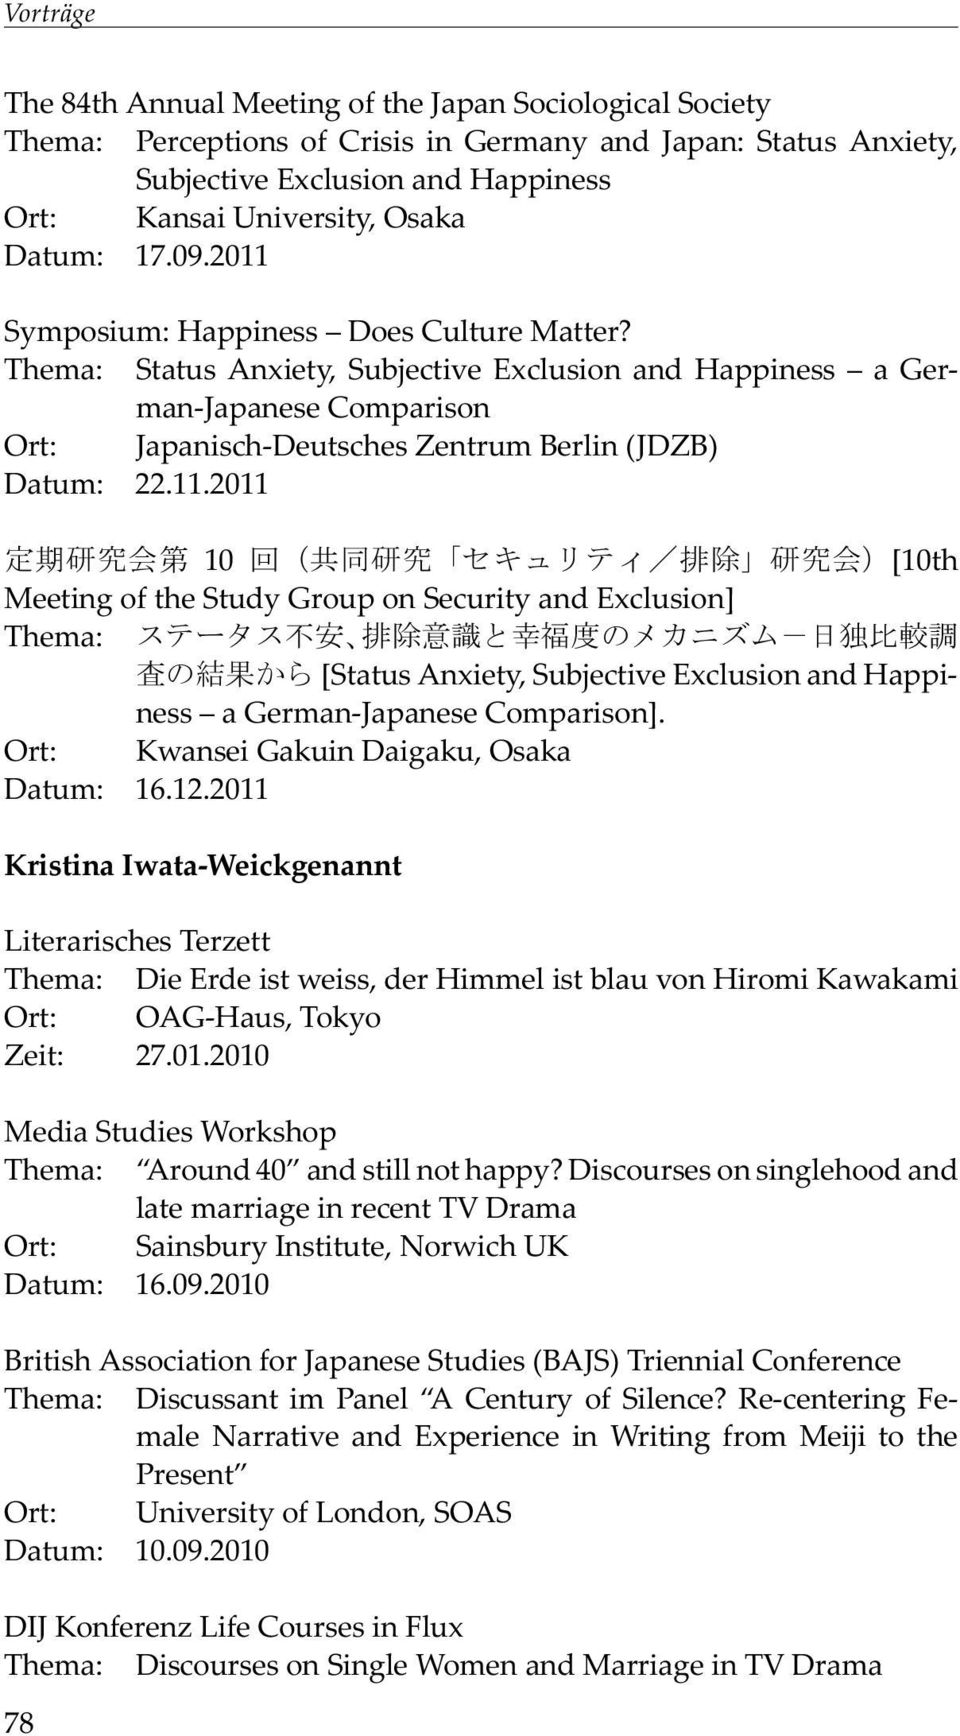 Symposium: Happiness Does Culture Matter? Thema: Status Anxiety, Subjective Exclusion and Happiness a German-Japanese Comparison Ort: Japanisch-Deutsches Zentrum Berlin (JDZB) Datum: 22.11.